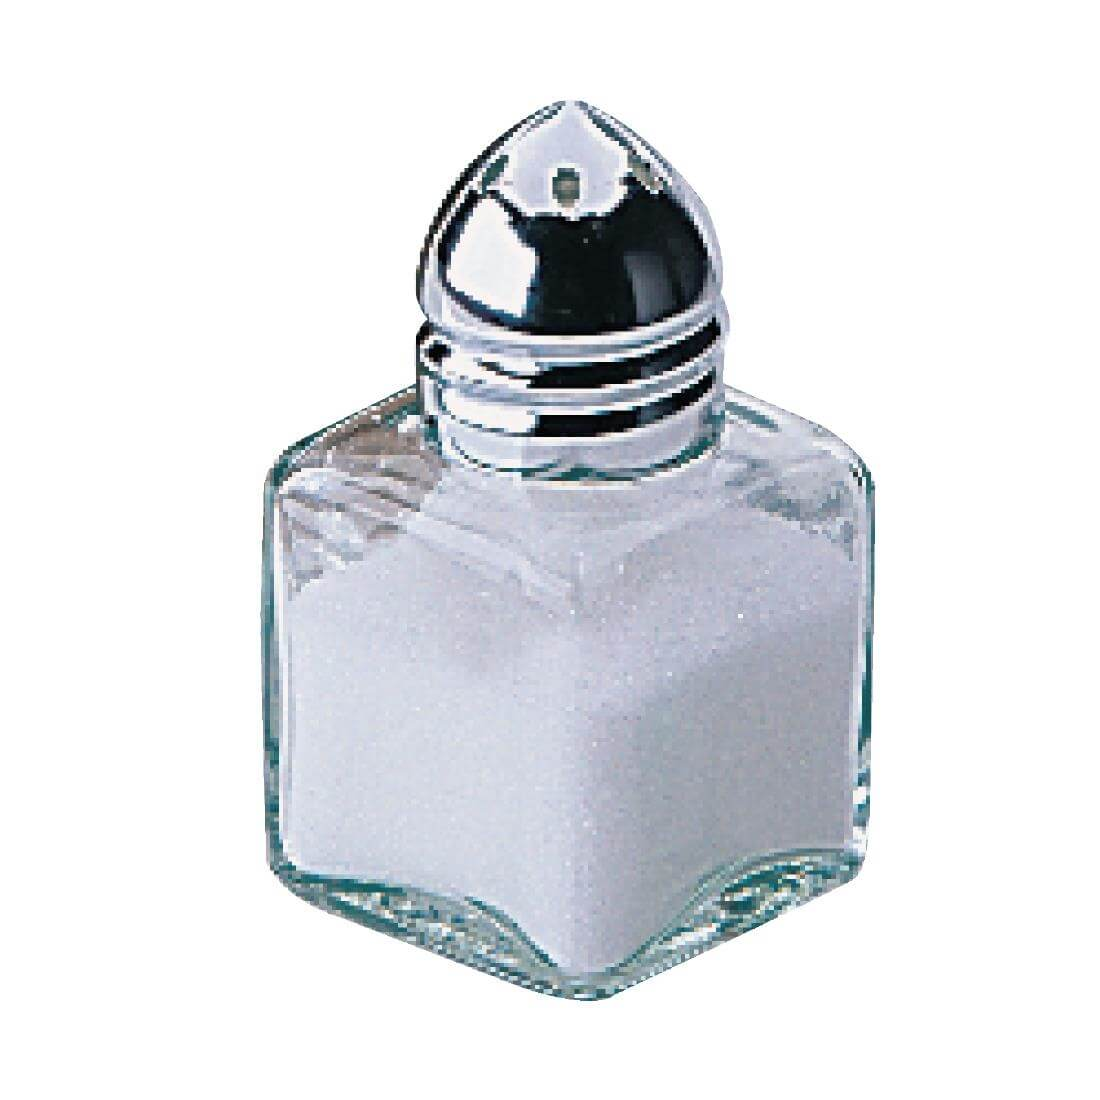 Room Service Salt - Pepper Shaker